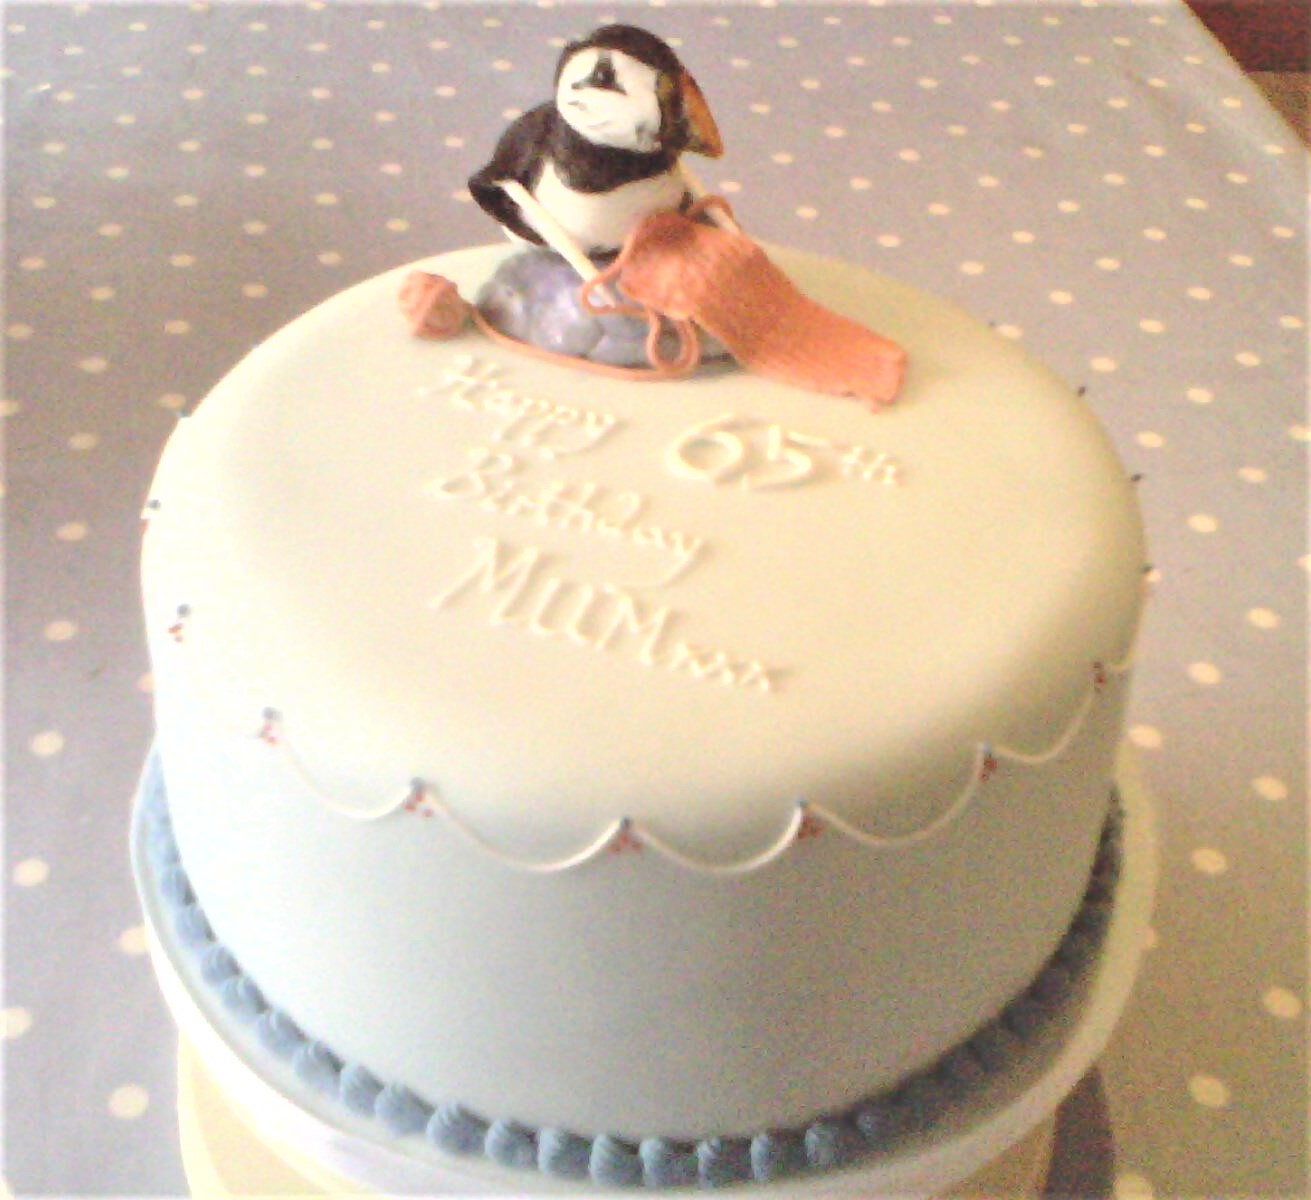 Blue party cake with a sugar puffin on top knitting